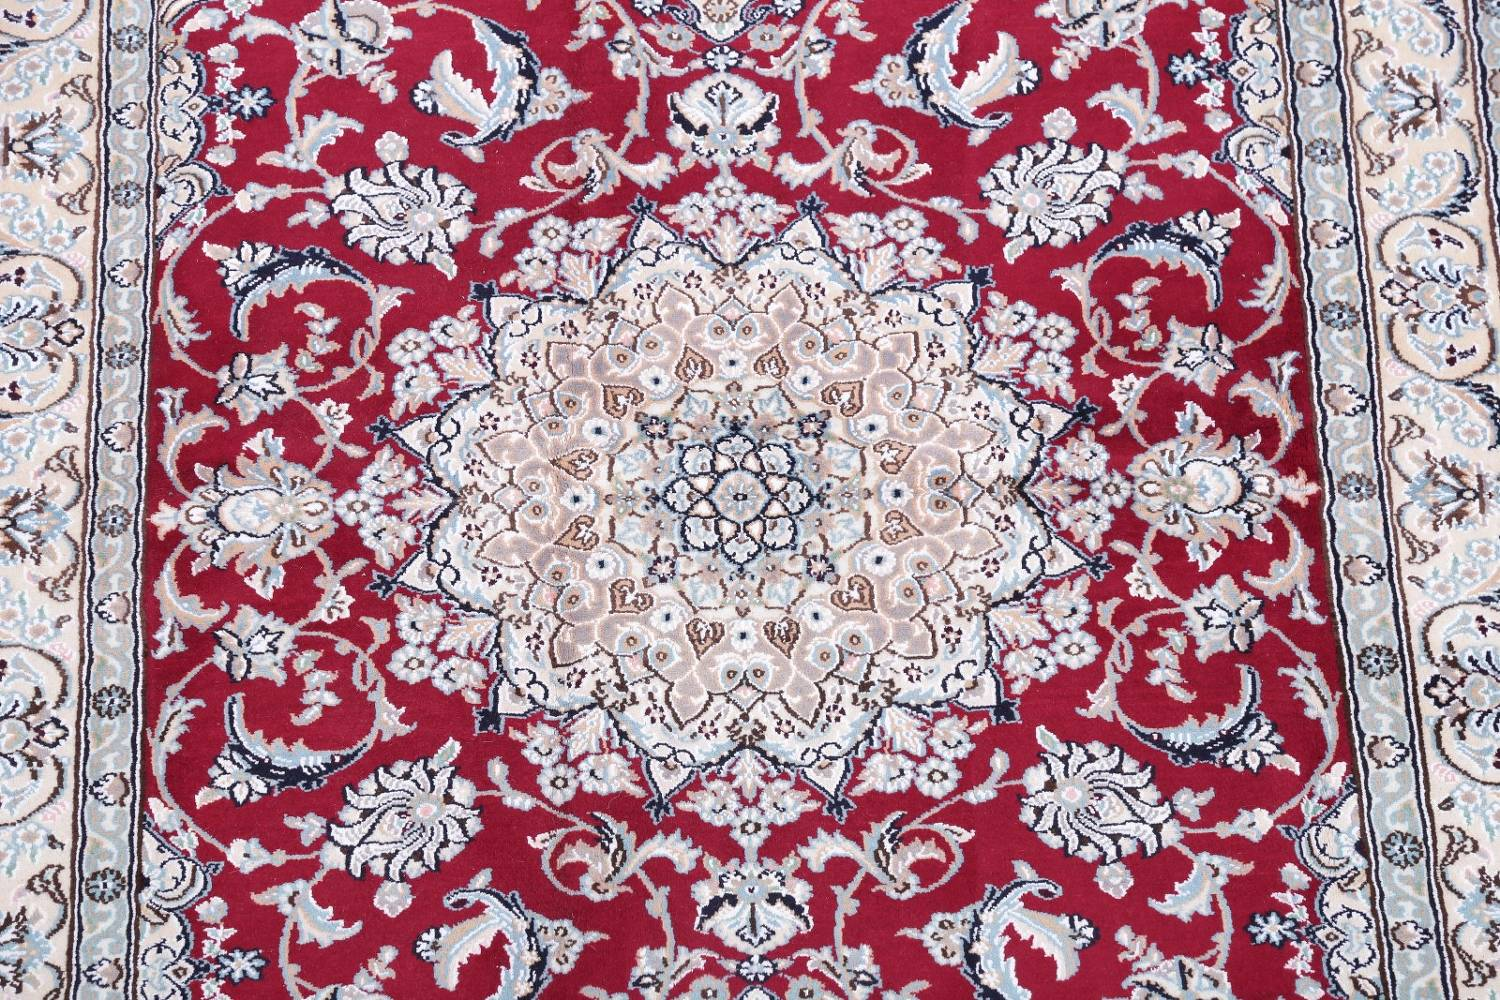 Floral Red Nain Persian Hand-Knotted 5x7 Wool Silk Area Rug image 4